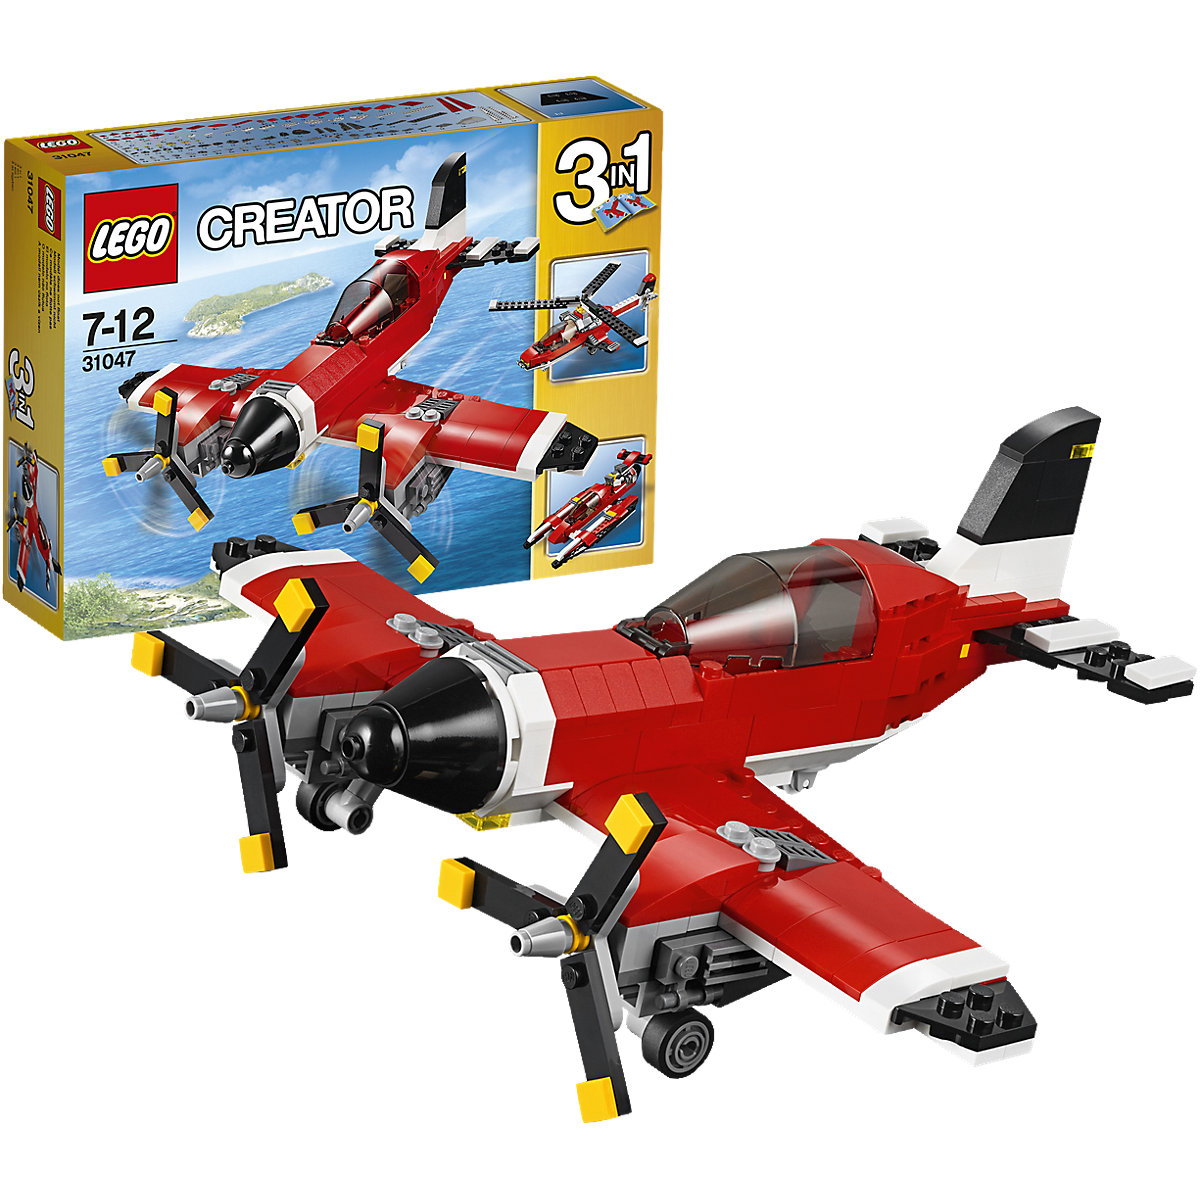 lego 31047 creator propeller flugzeug lego mytoys. Black Bedroom Furniture Sets. Home Design Ideas